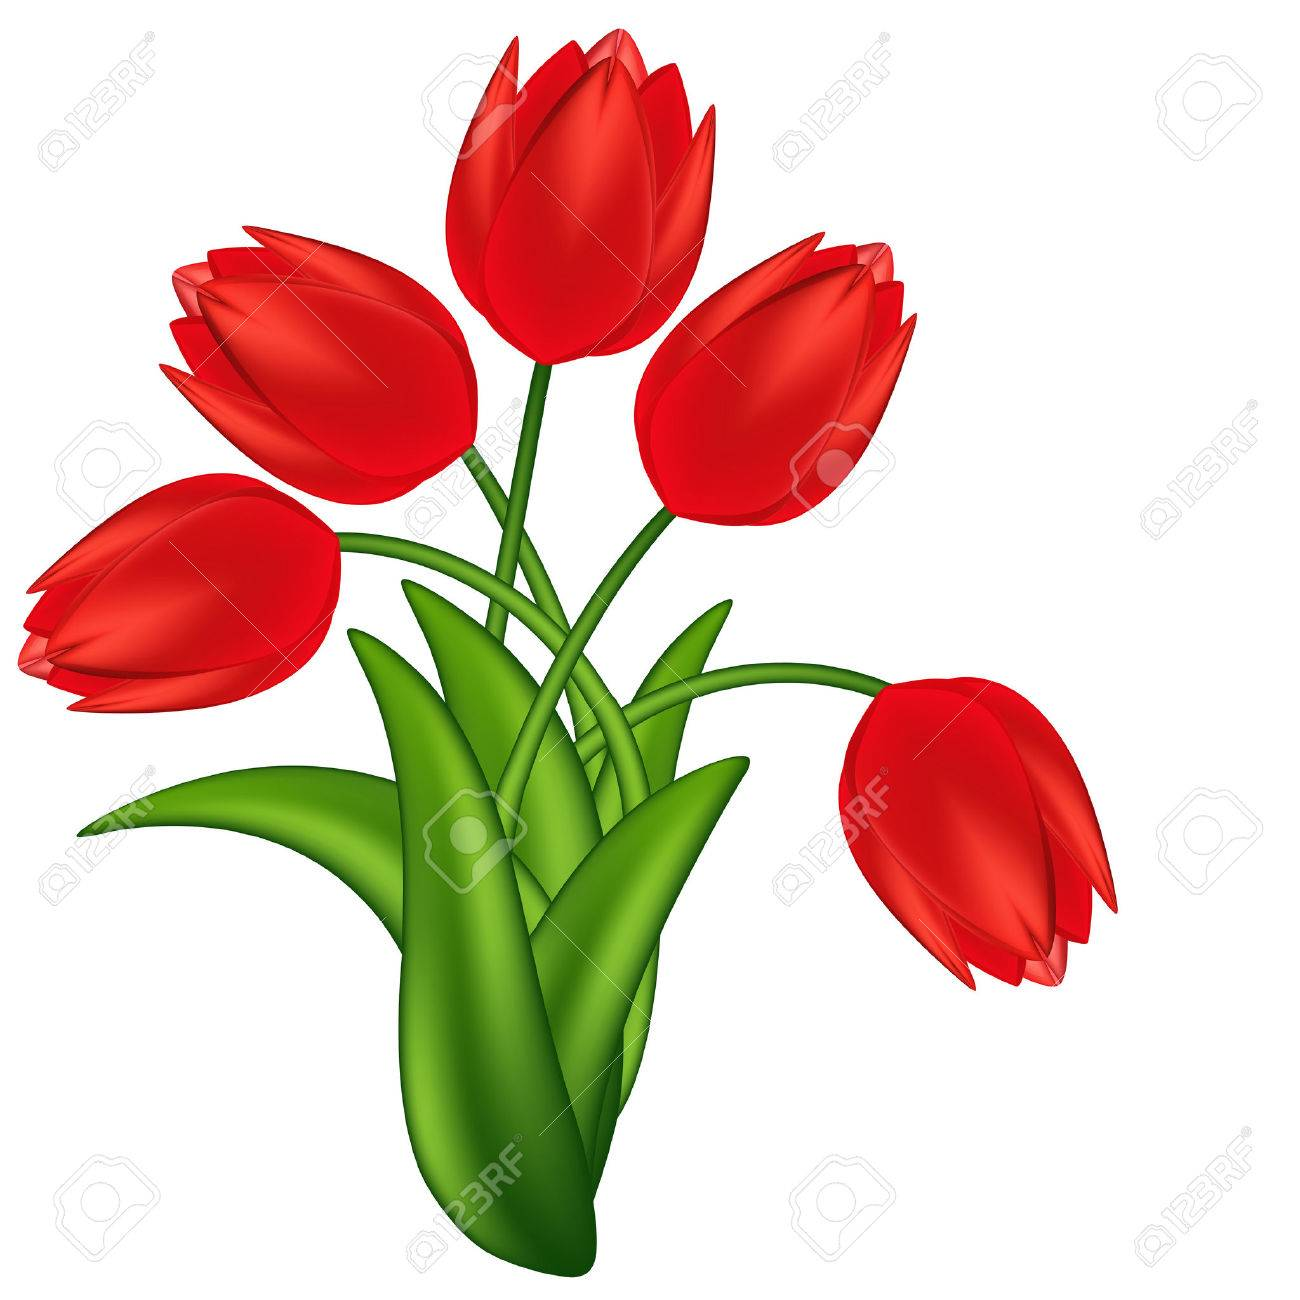 Vector illustration of red tulips. Gradient meshes. Stock Vector - 8977235